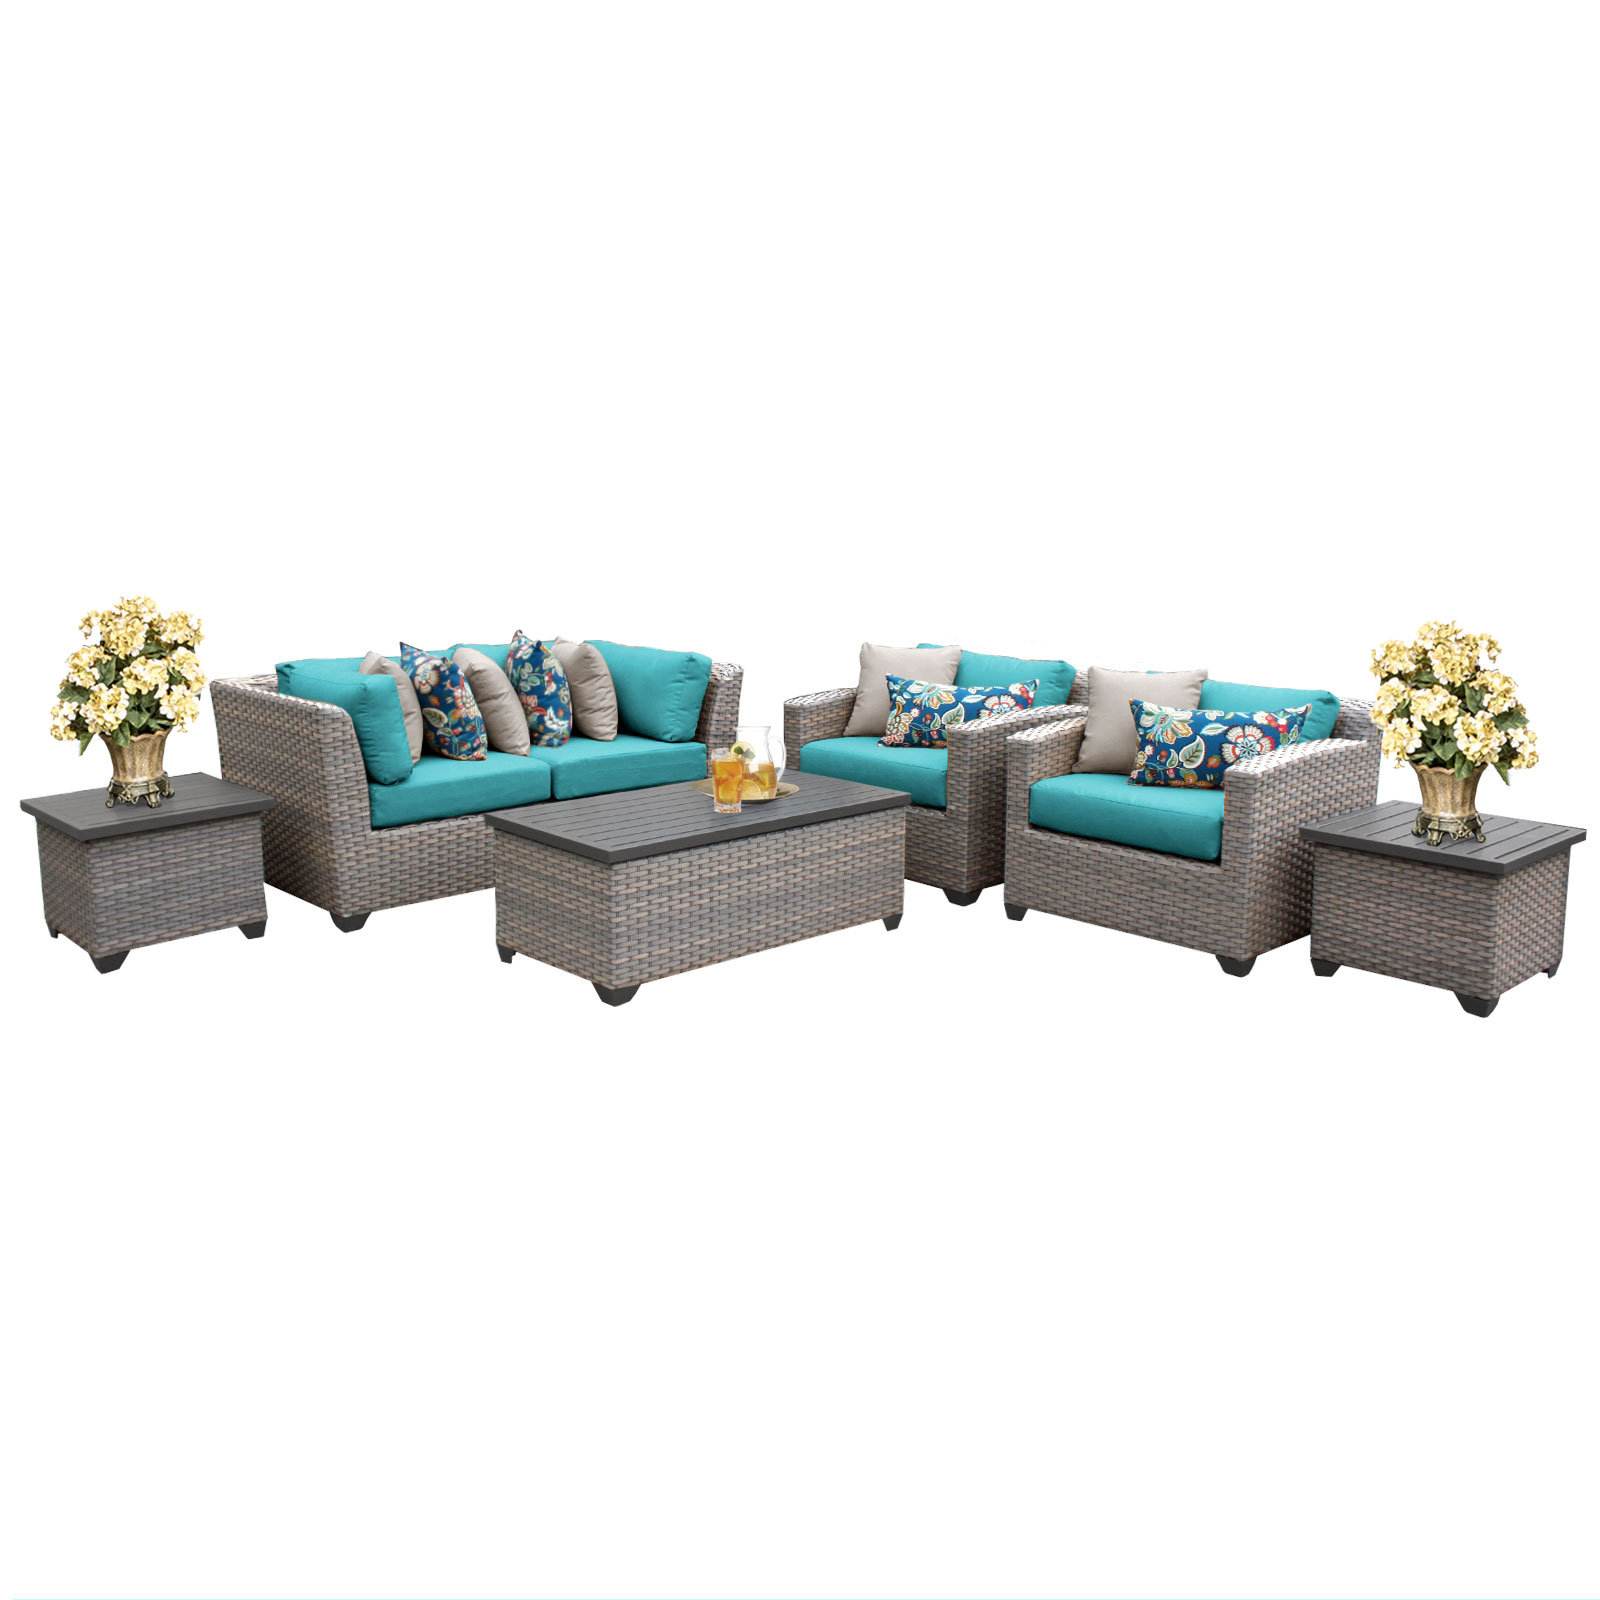 Catalina 7 Piece Outdoor Wicker Patio Furniture Set 07d by TK Classics